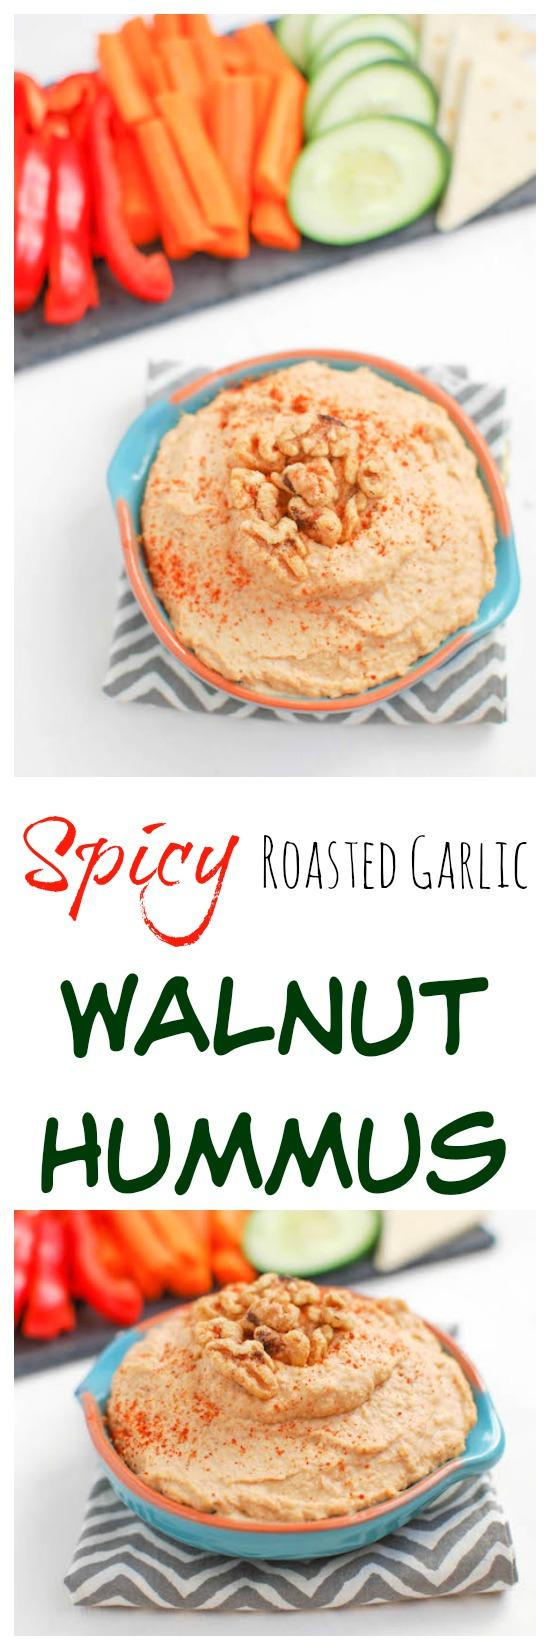 This Spicy Roasted Garlic Walnut Hummus is heart-healthy and packed with flavor. Makes the perfect snack or appetizer!